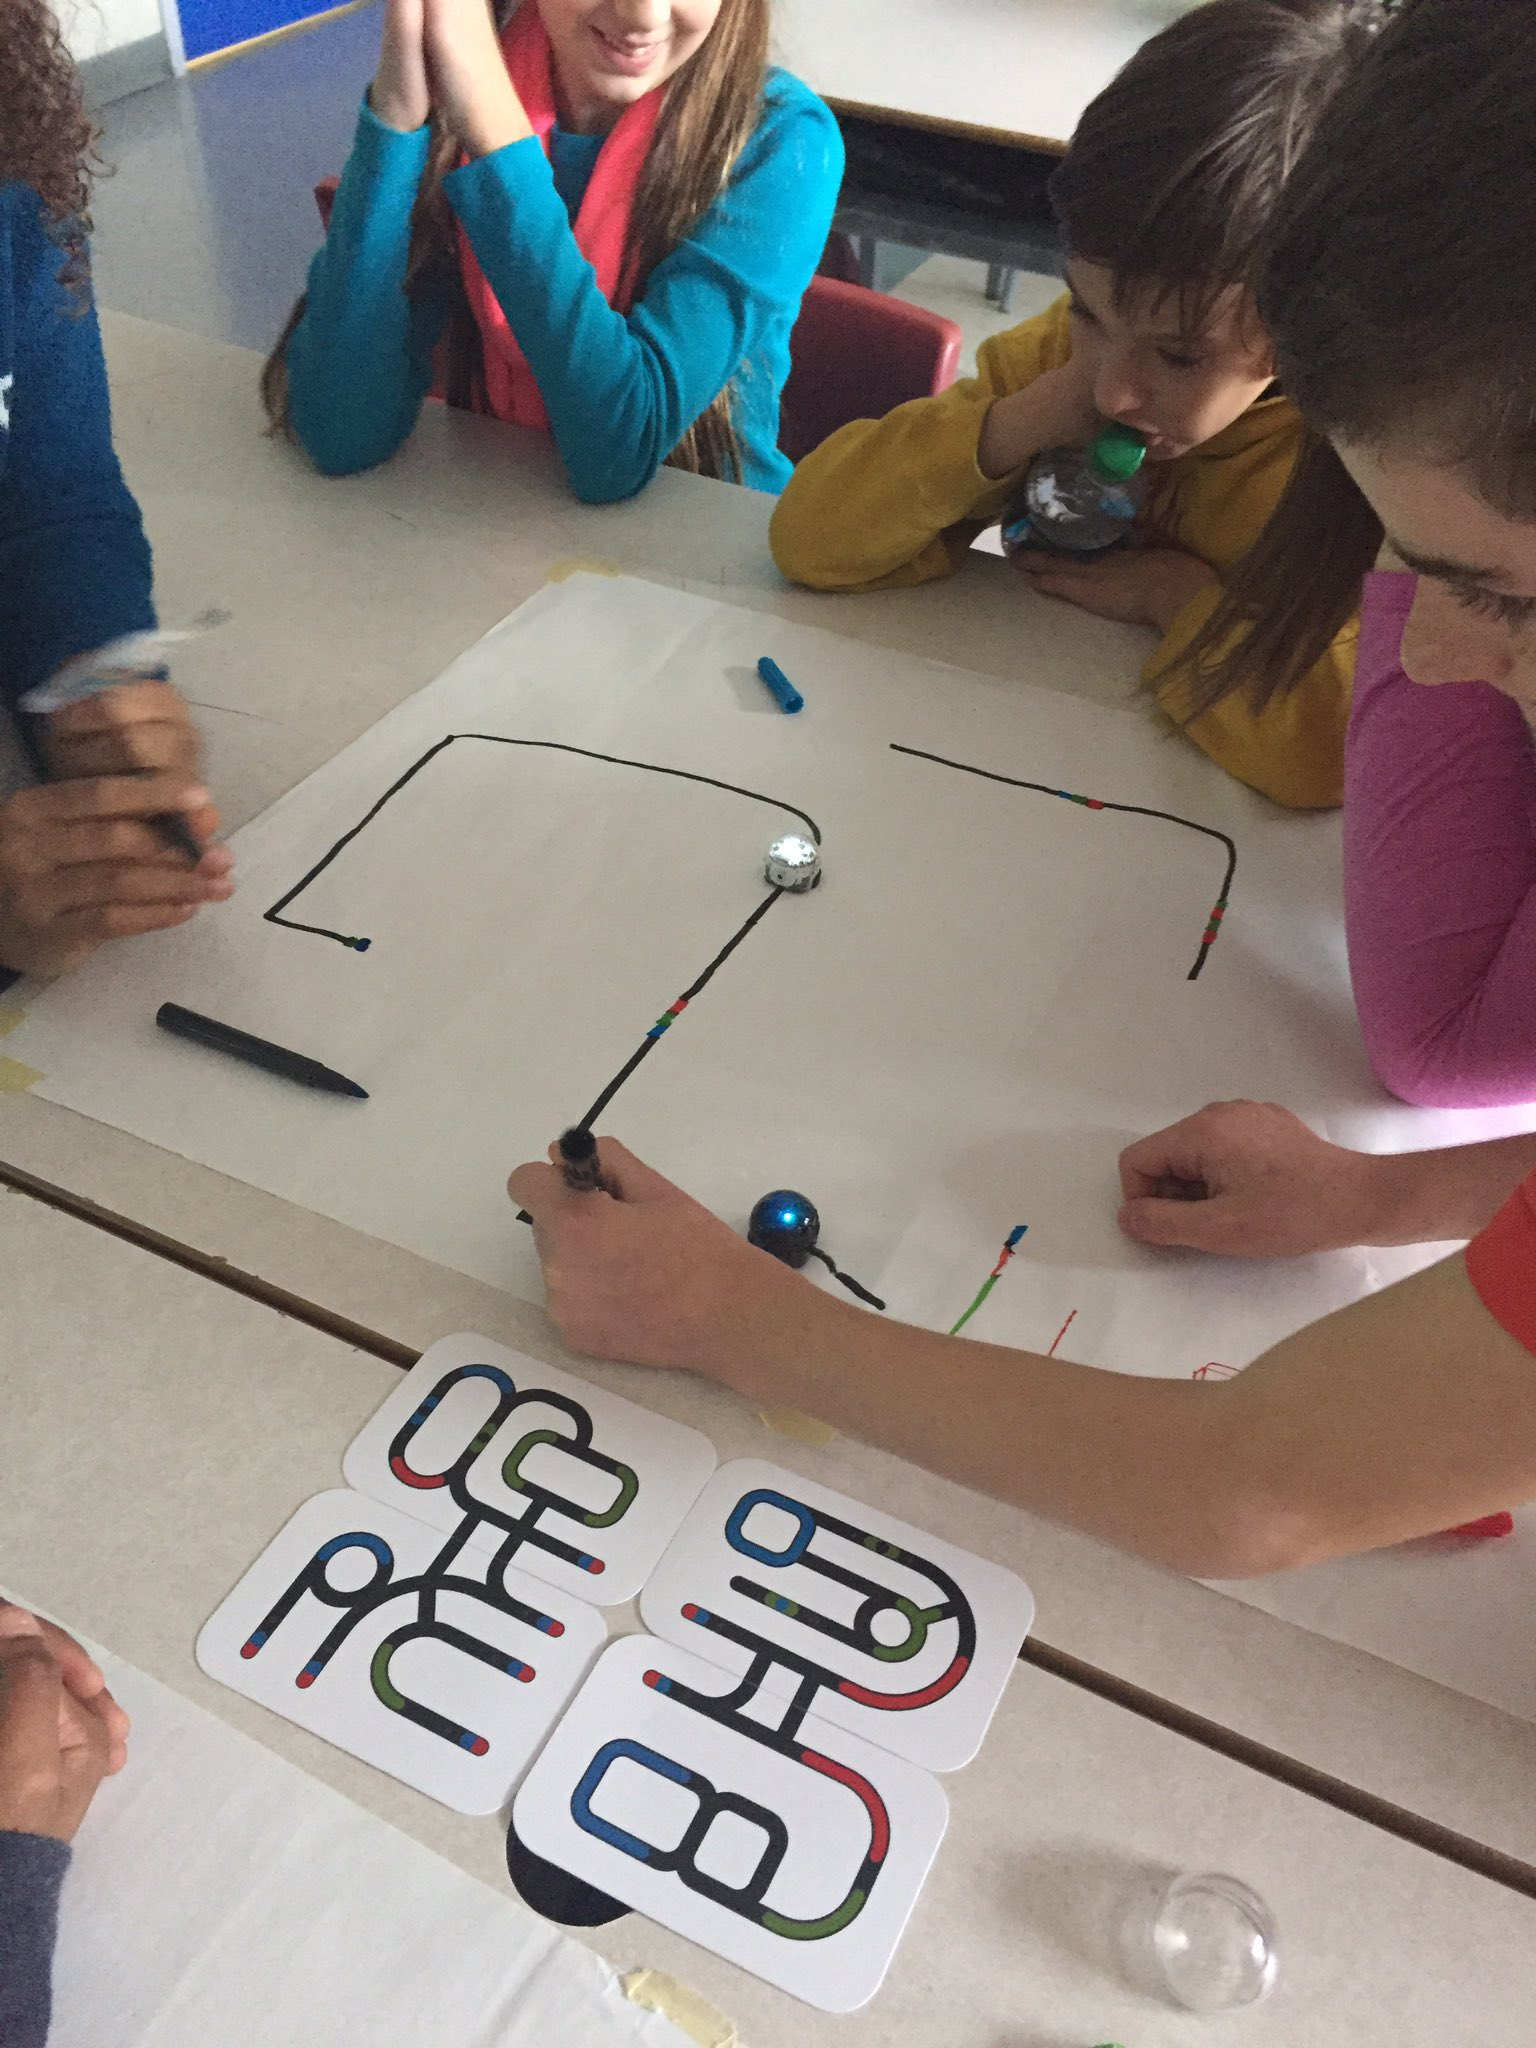 Playing around with our new @OZOBOT today! Students learning the basics of coding & loving it! #ontariocodes @SPK_ocsb https://t.co/22dyMKxZfa